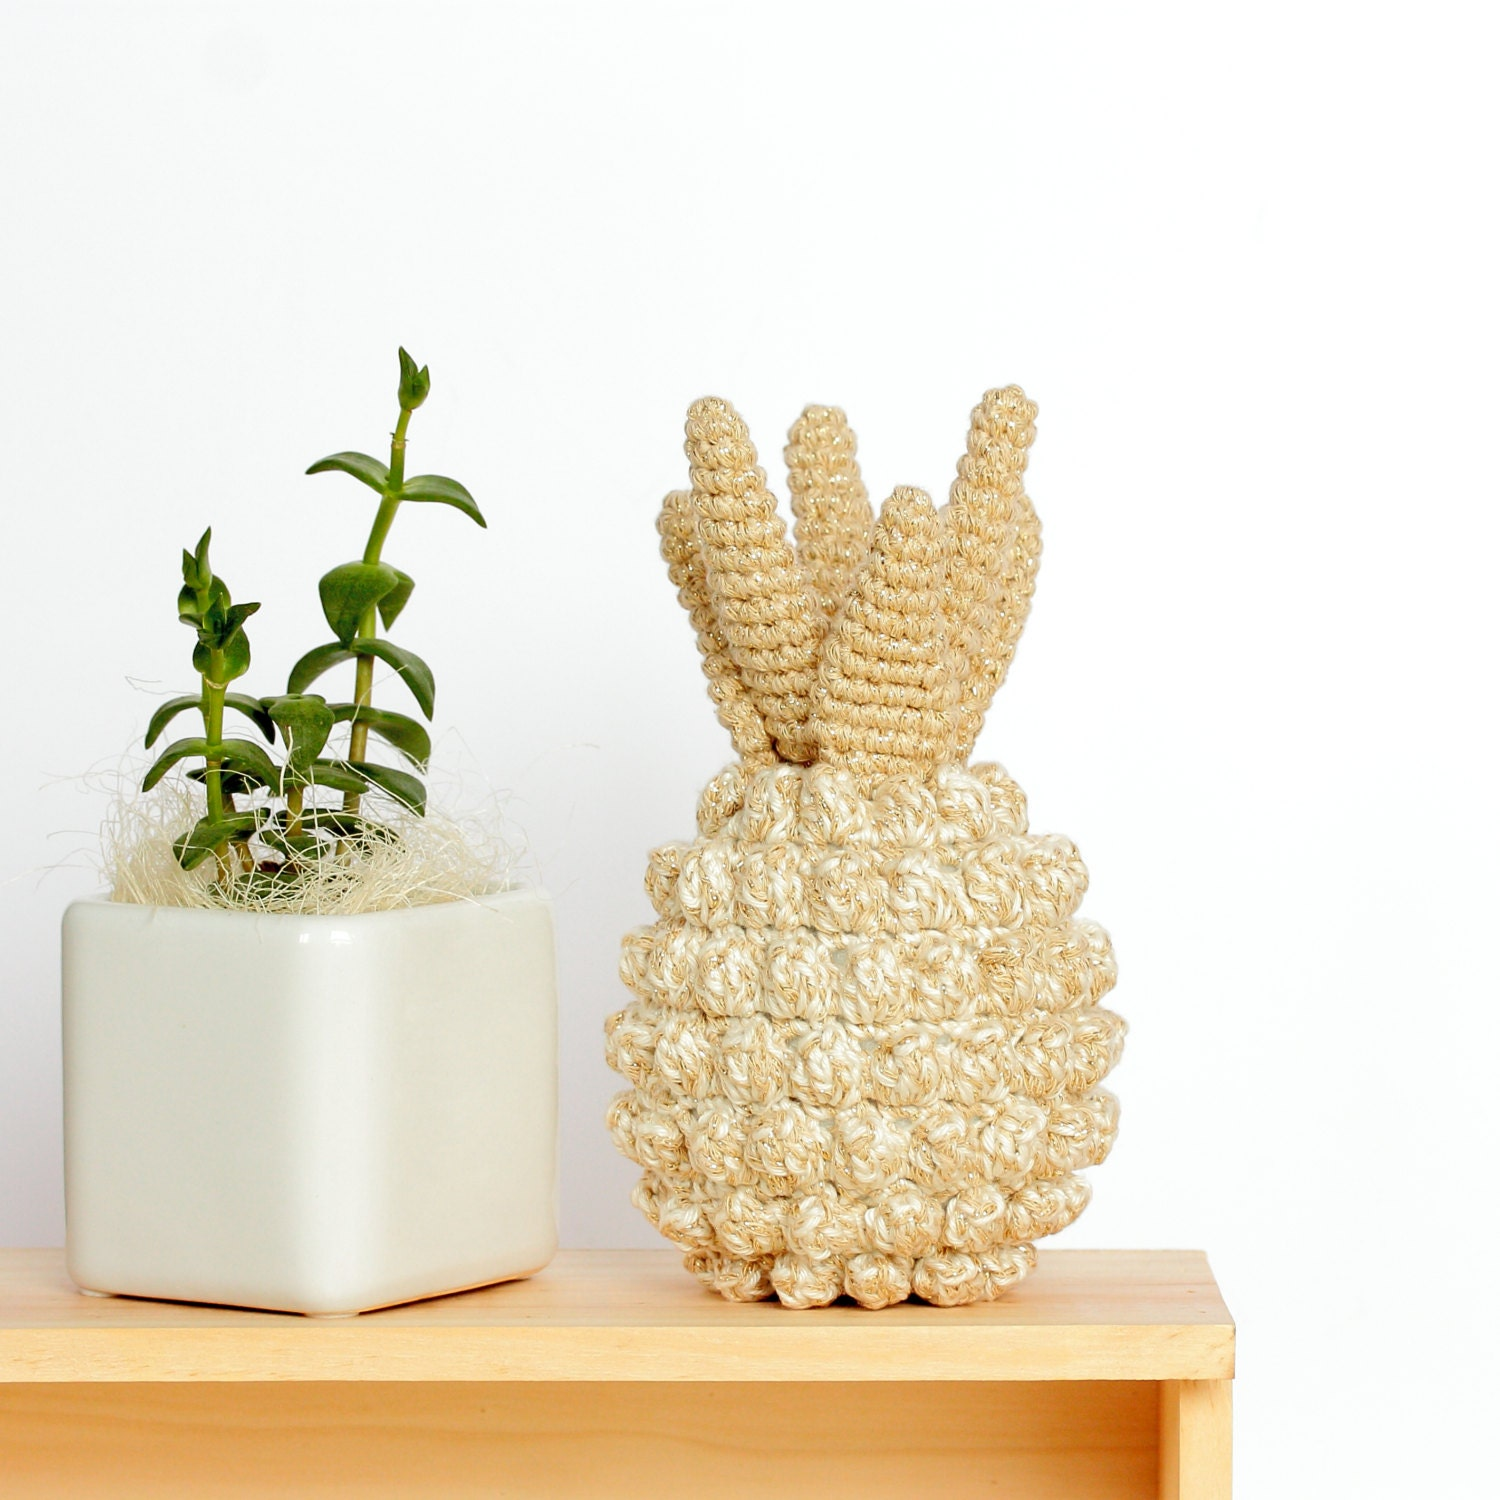 Pineapple home decor crochet pineapple decor pineapple for Ananas dekoration